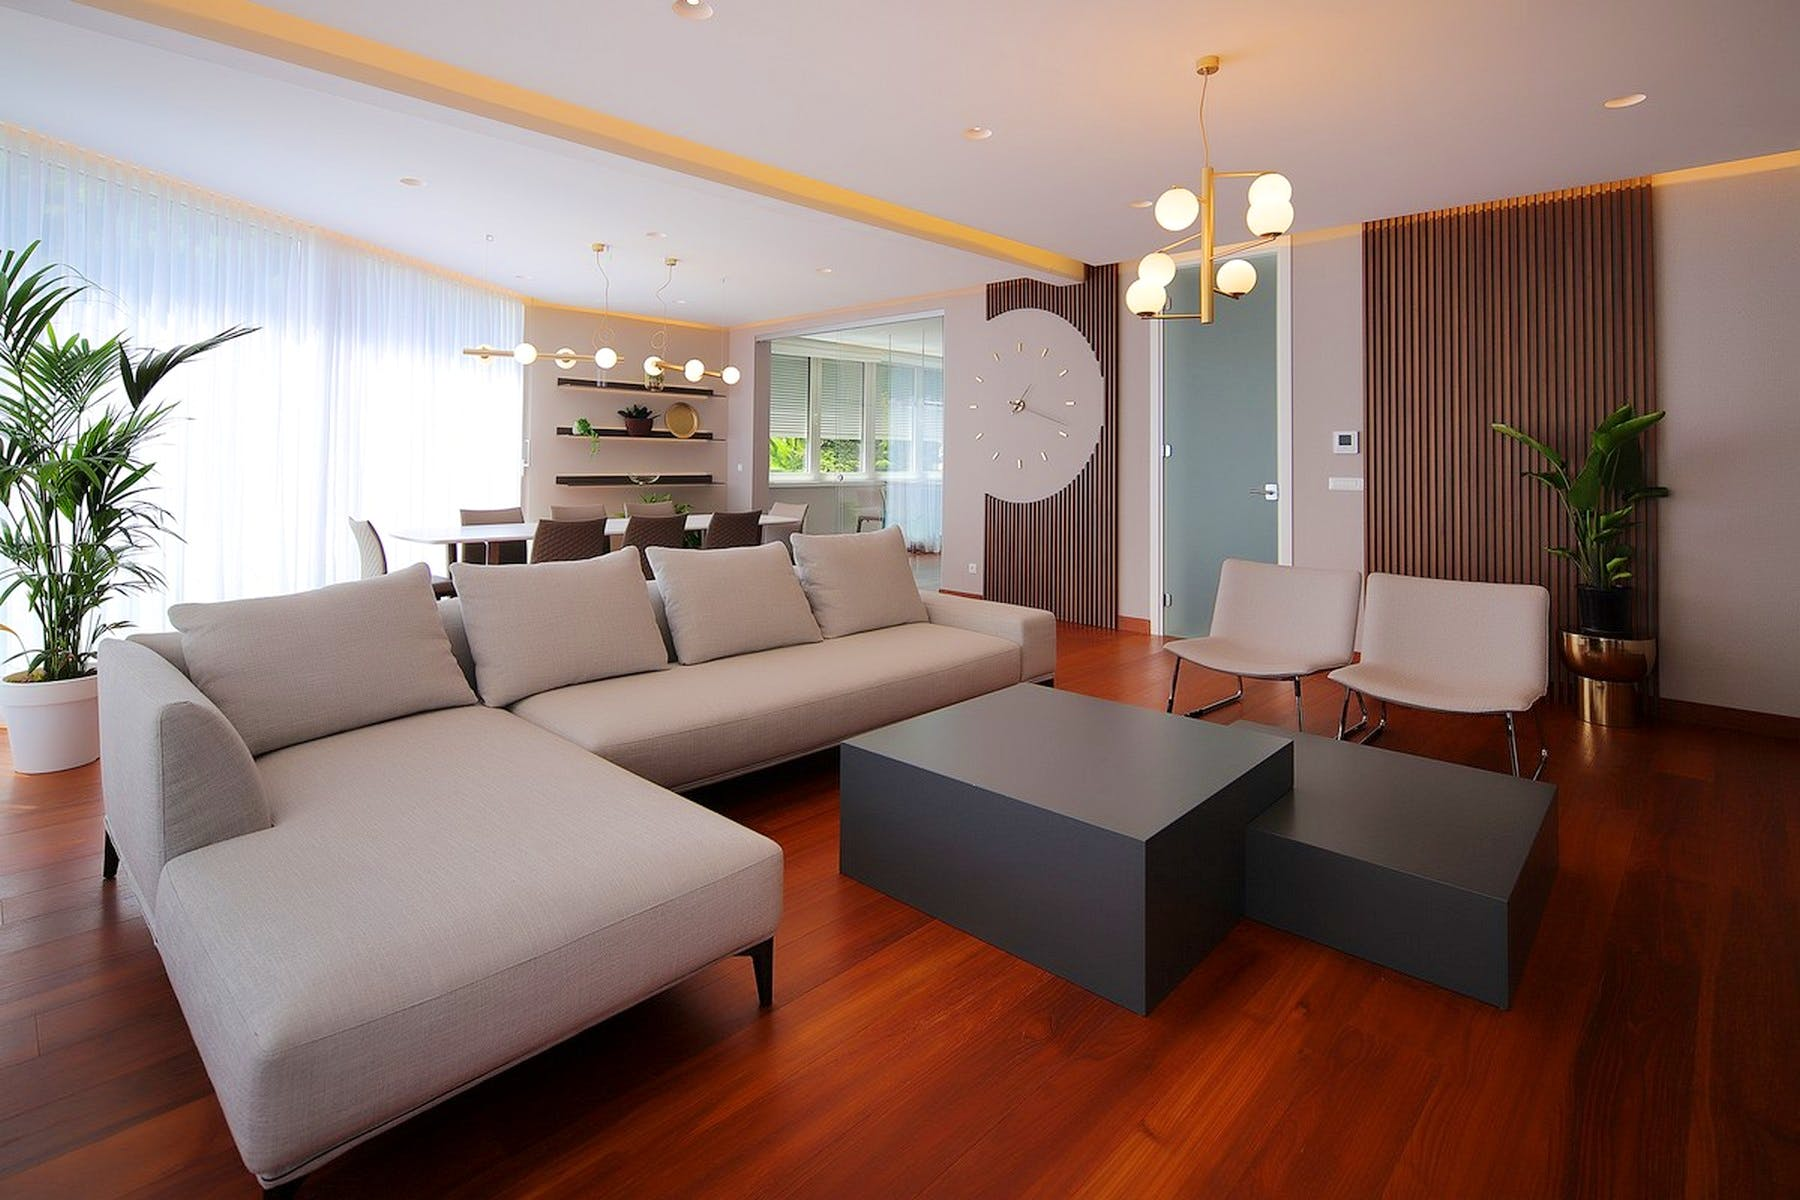 Modernly designed living room